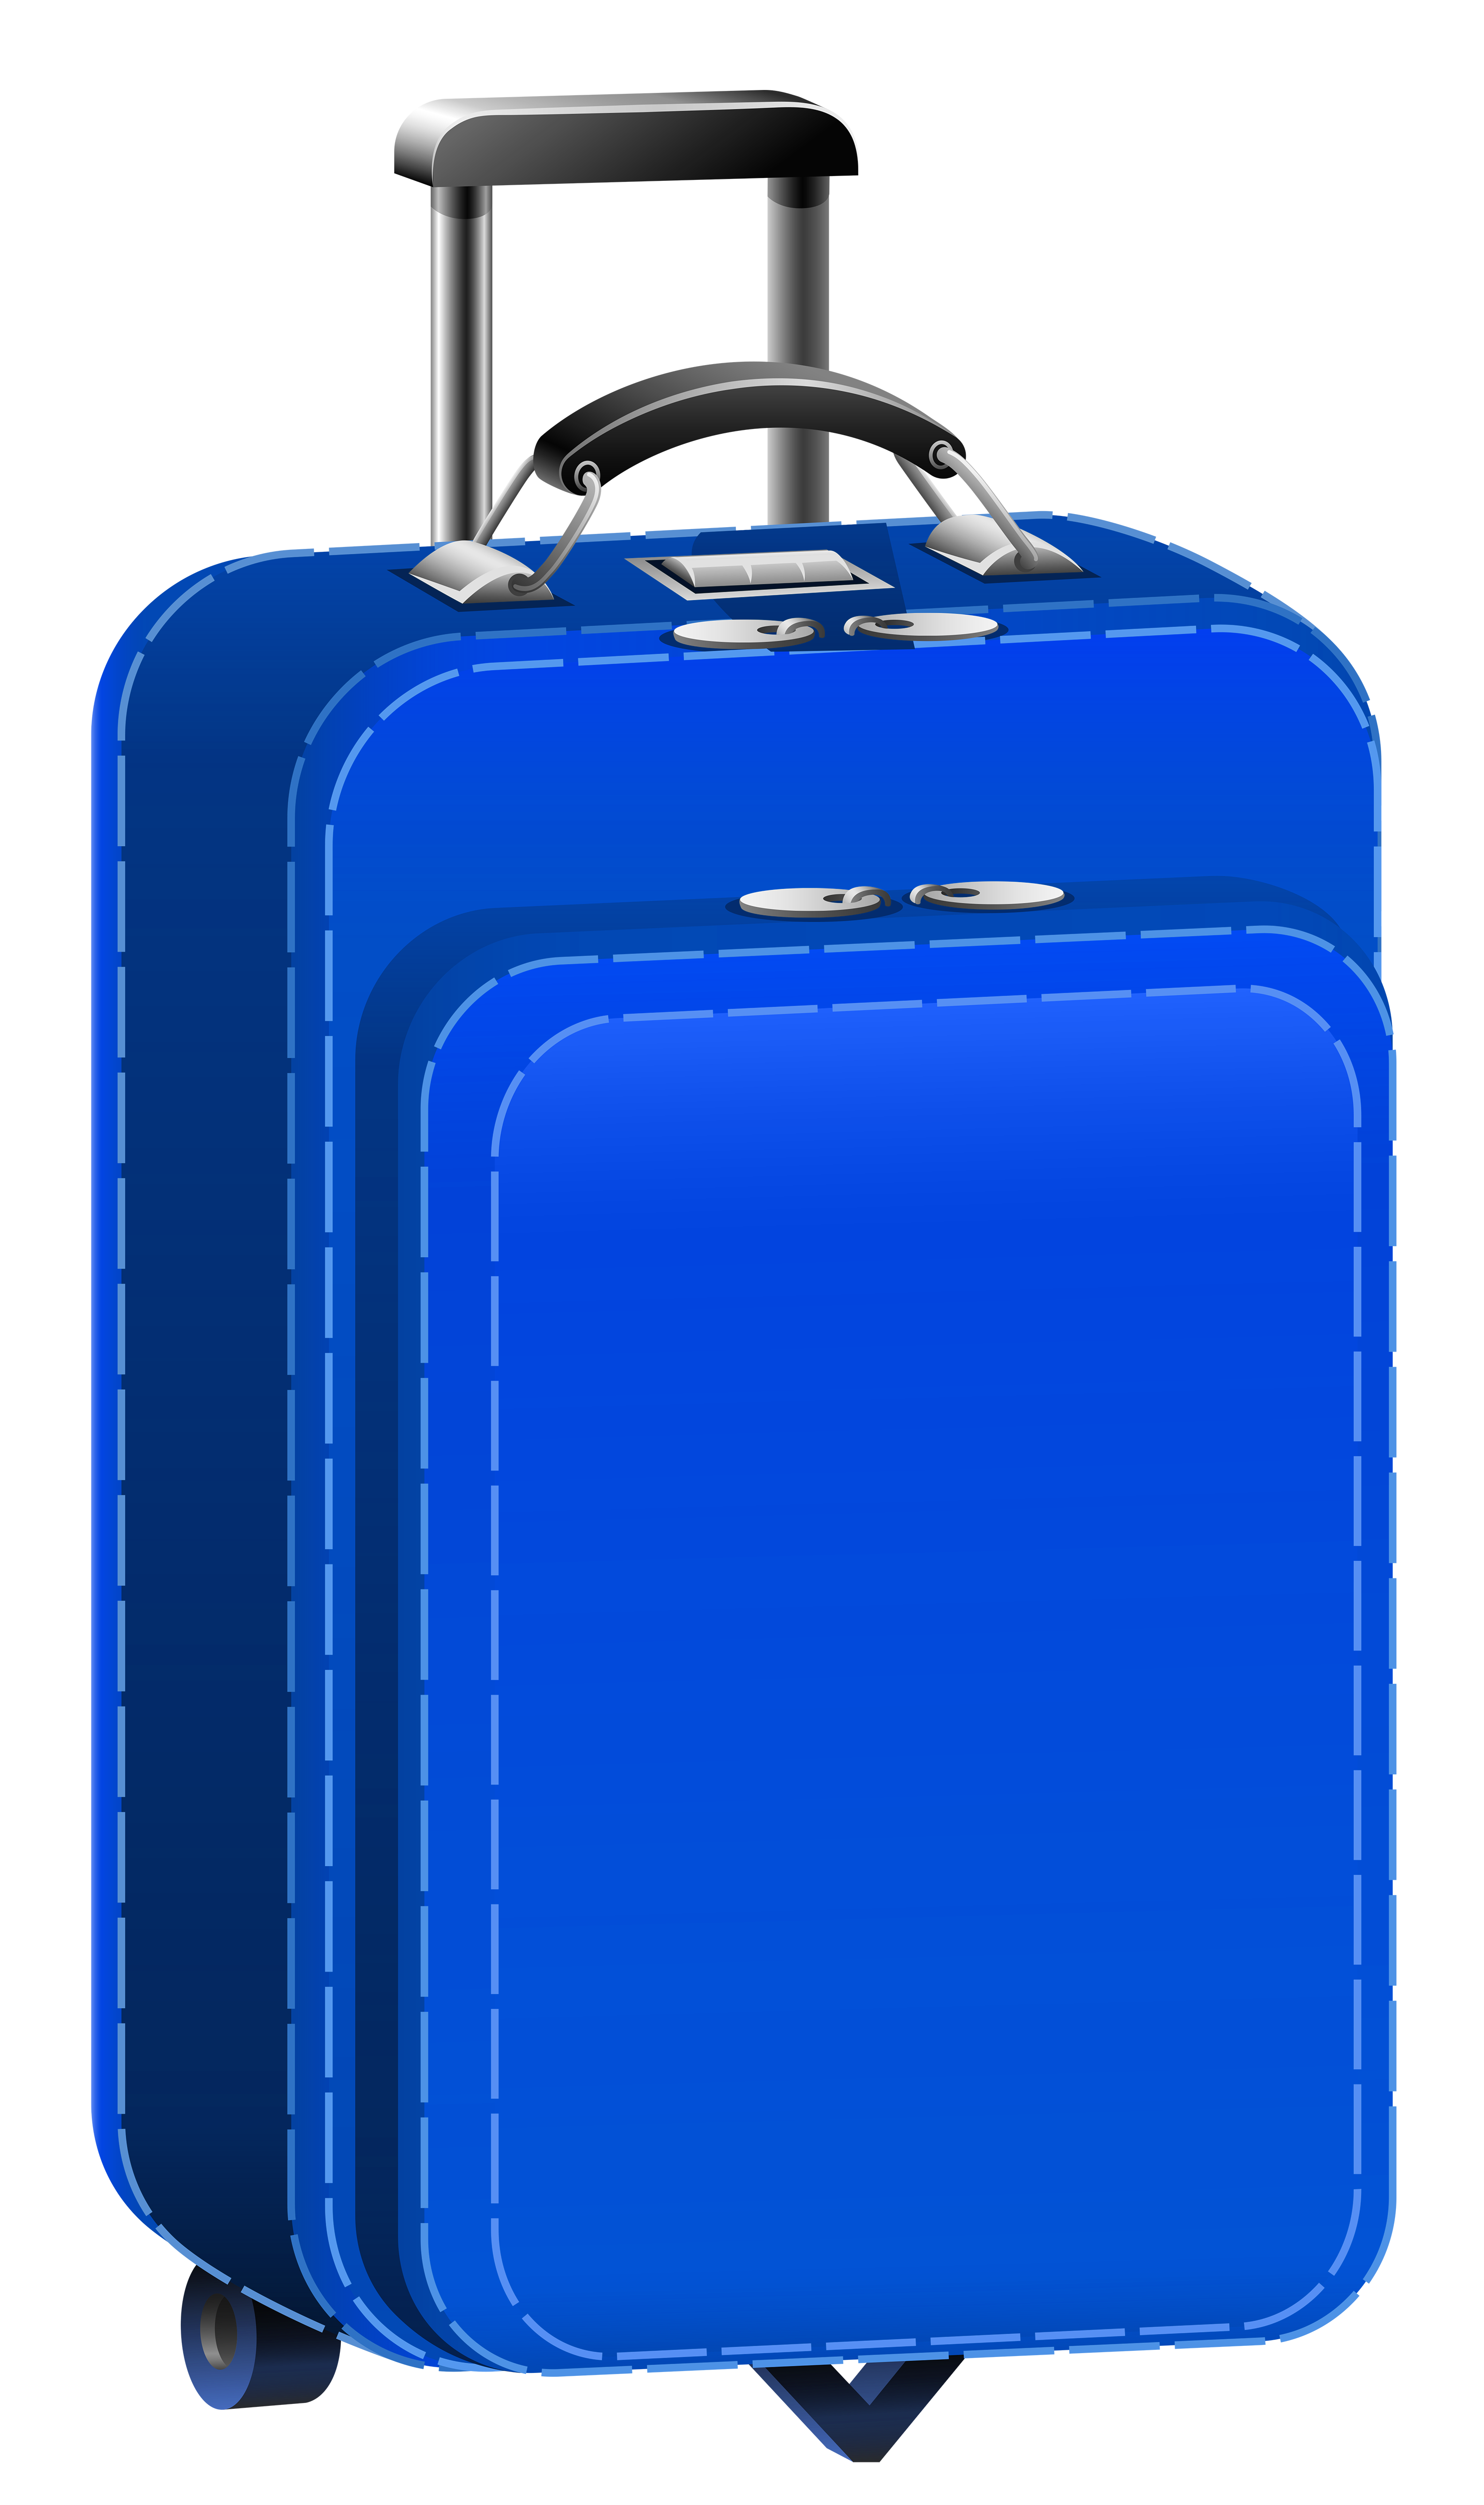 Travel Bags Png - Blue Travel Bag PNG Clipart Picture   Gallery Yopriceville - High ...